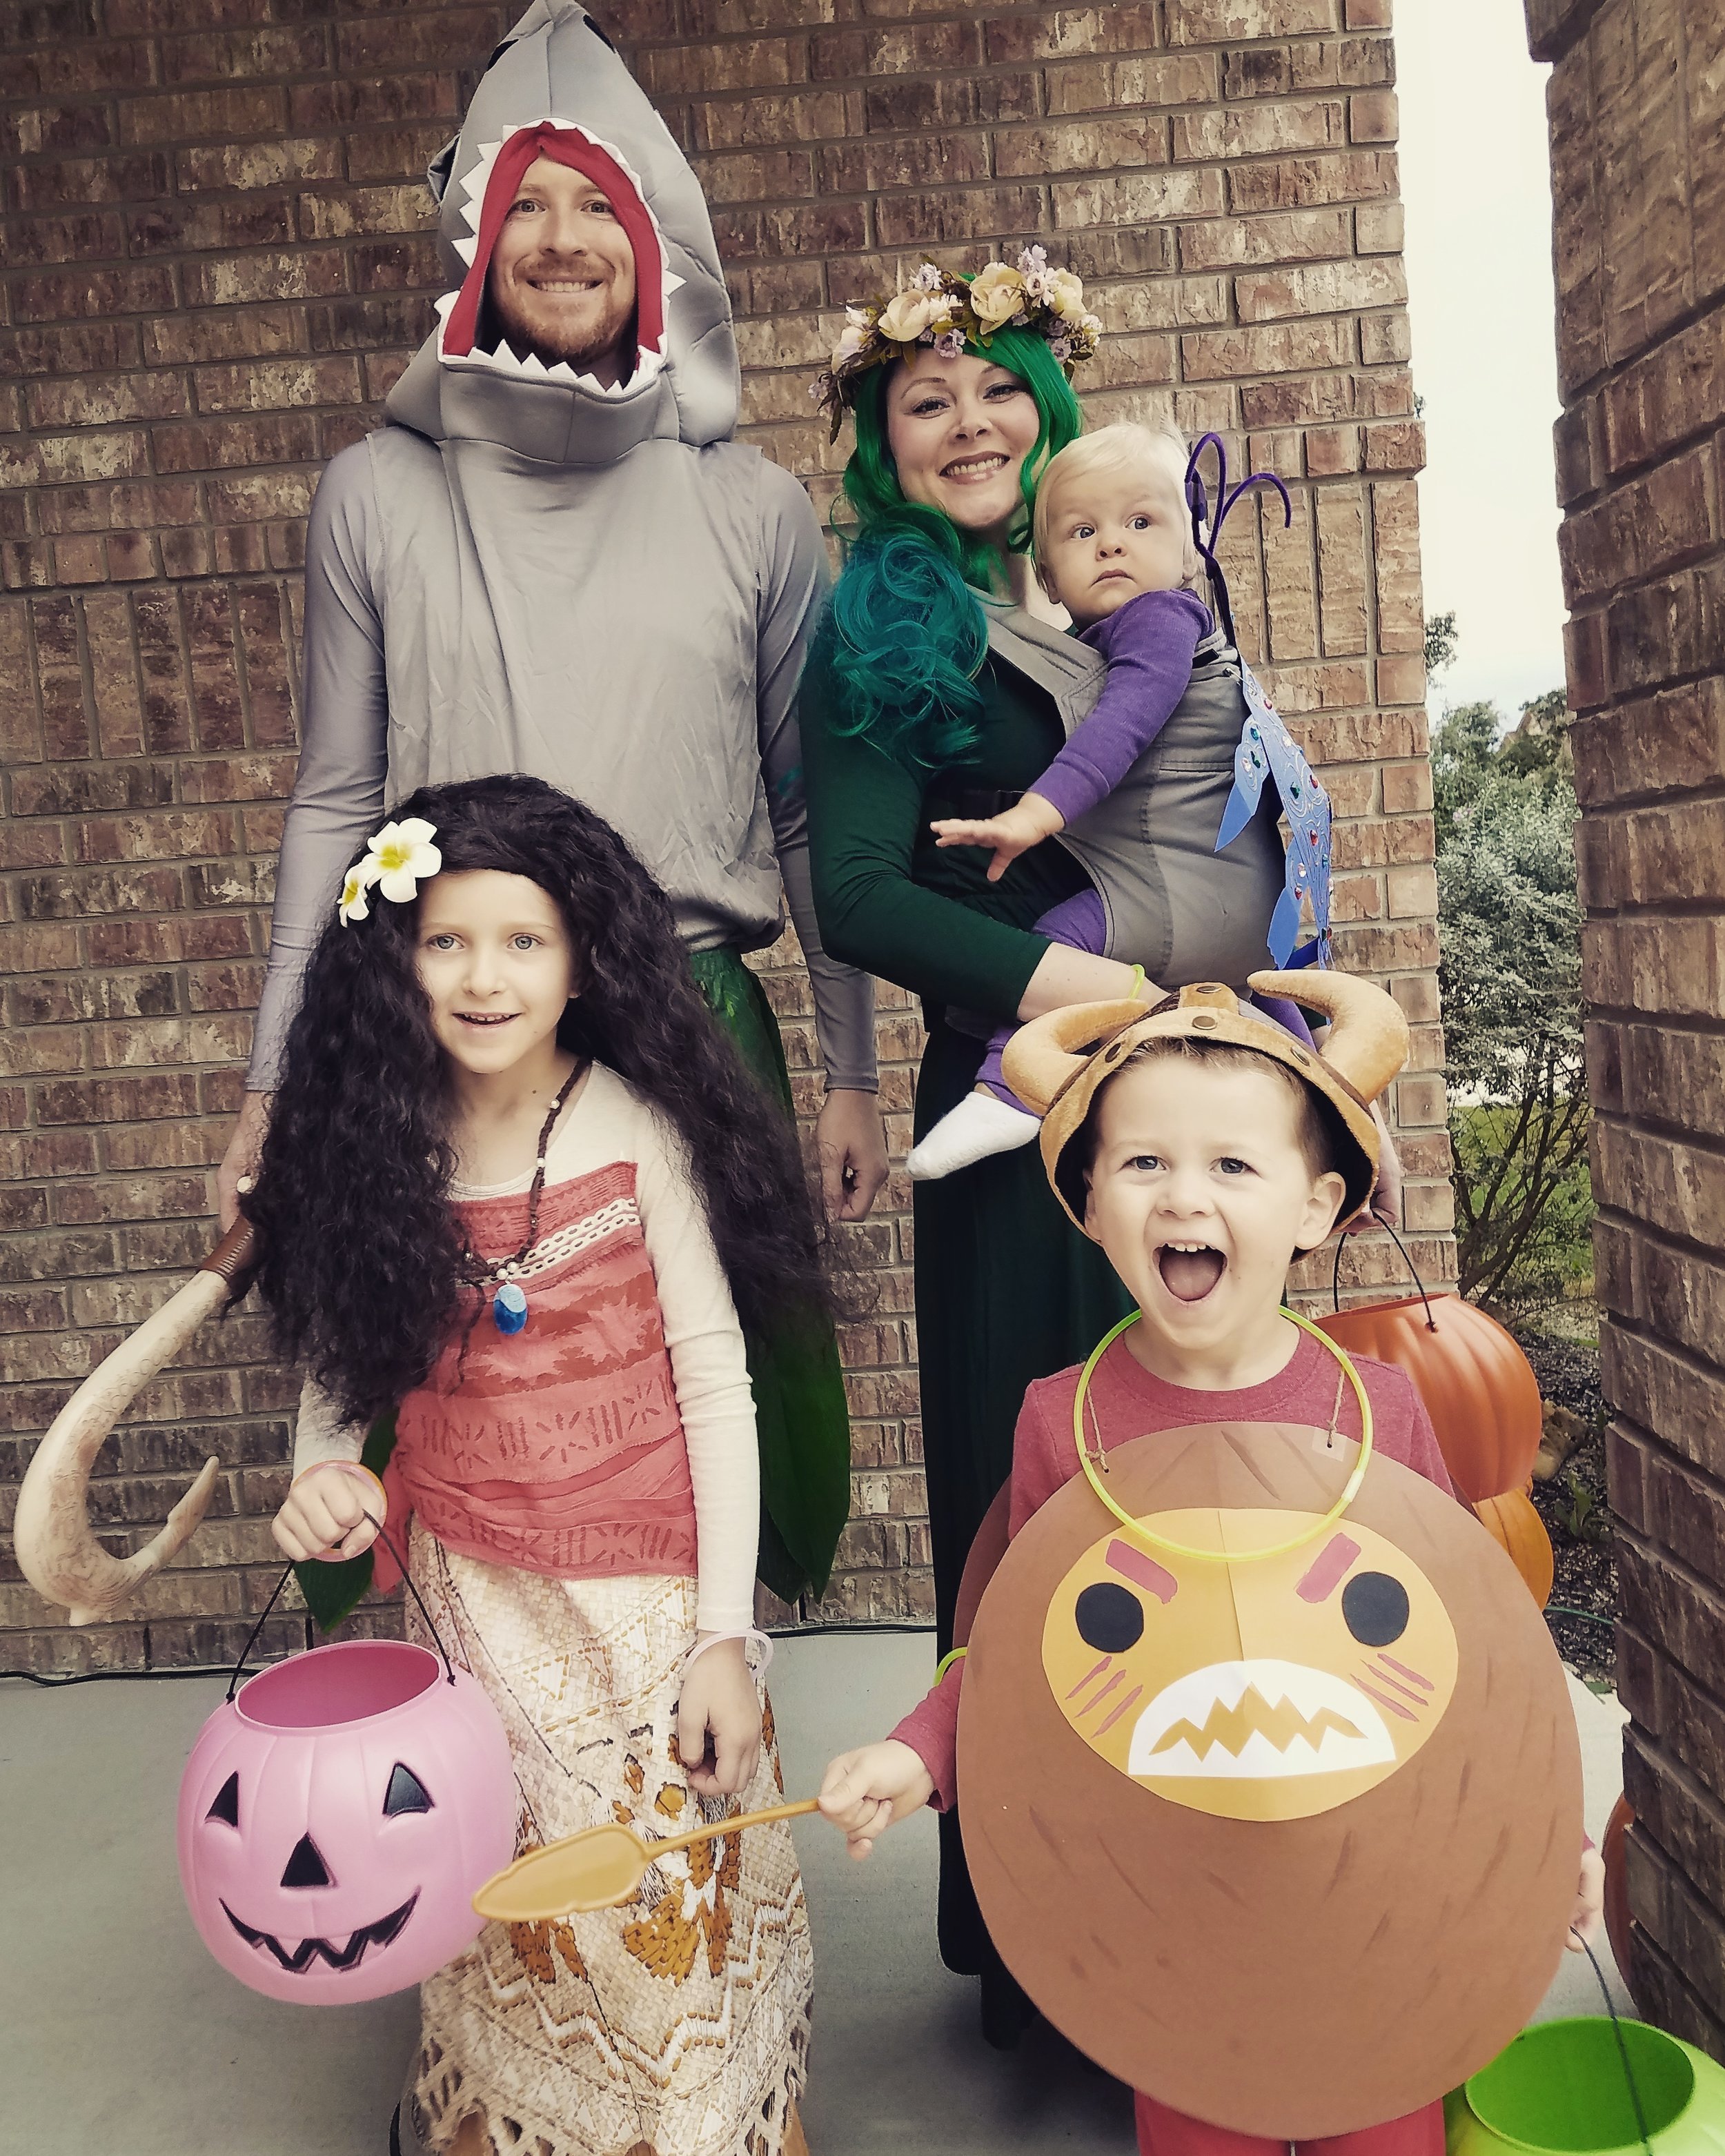 family halloween costume sowing seeds blog